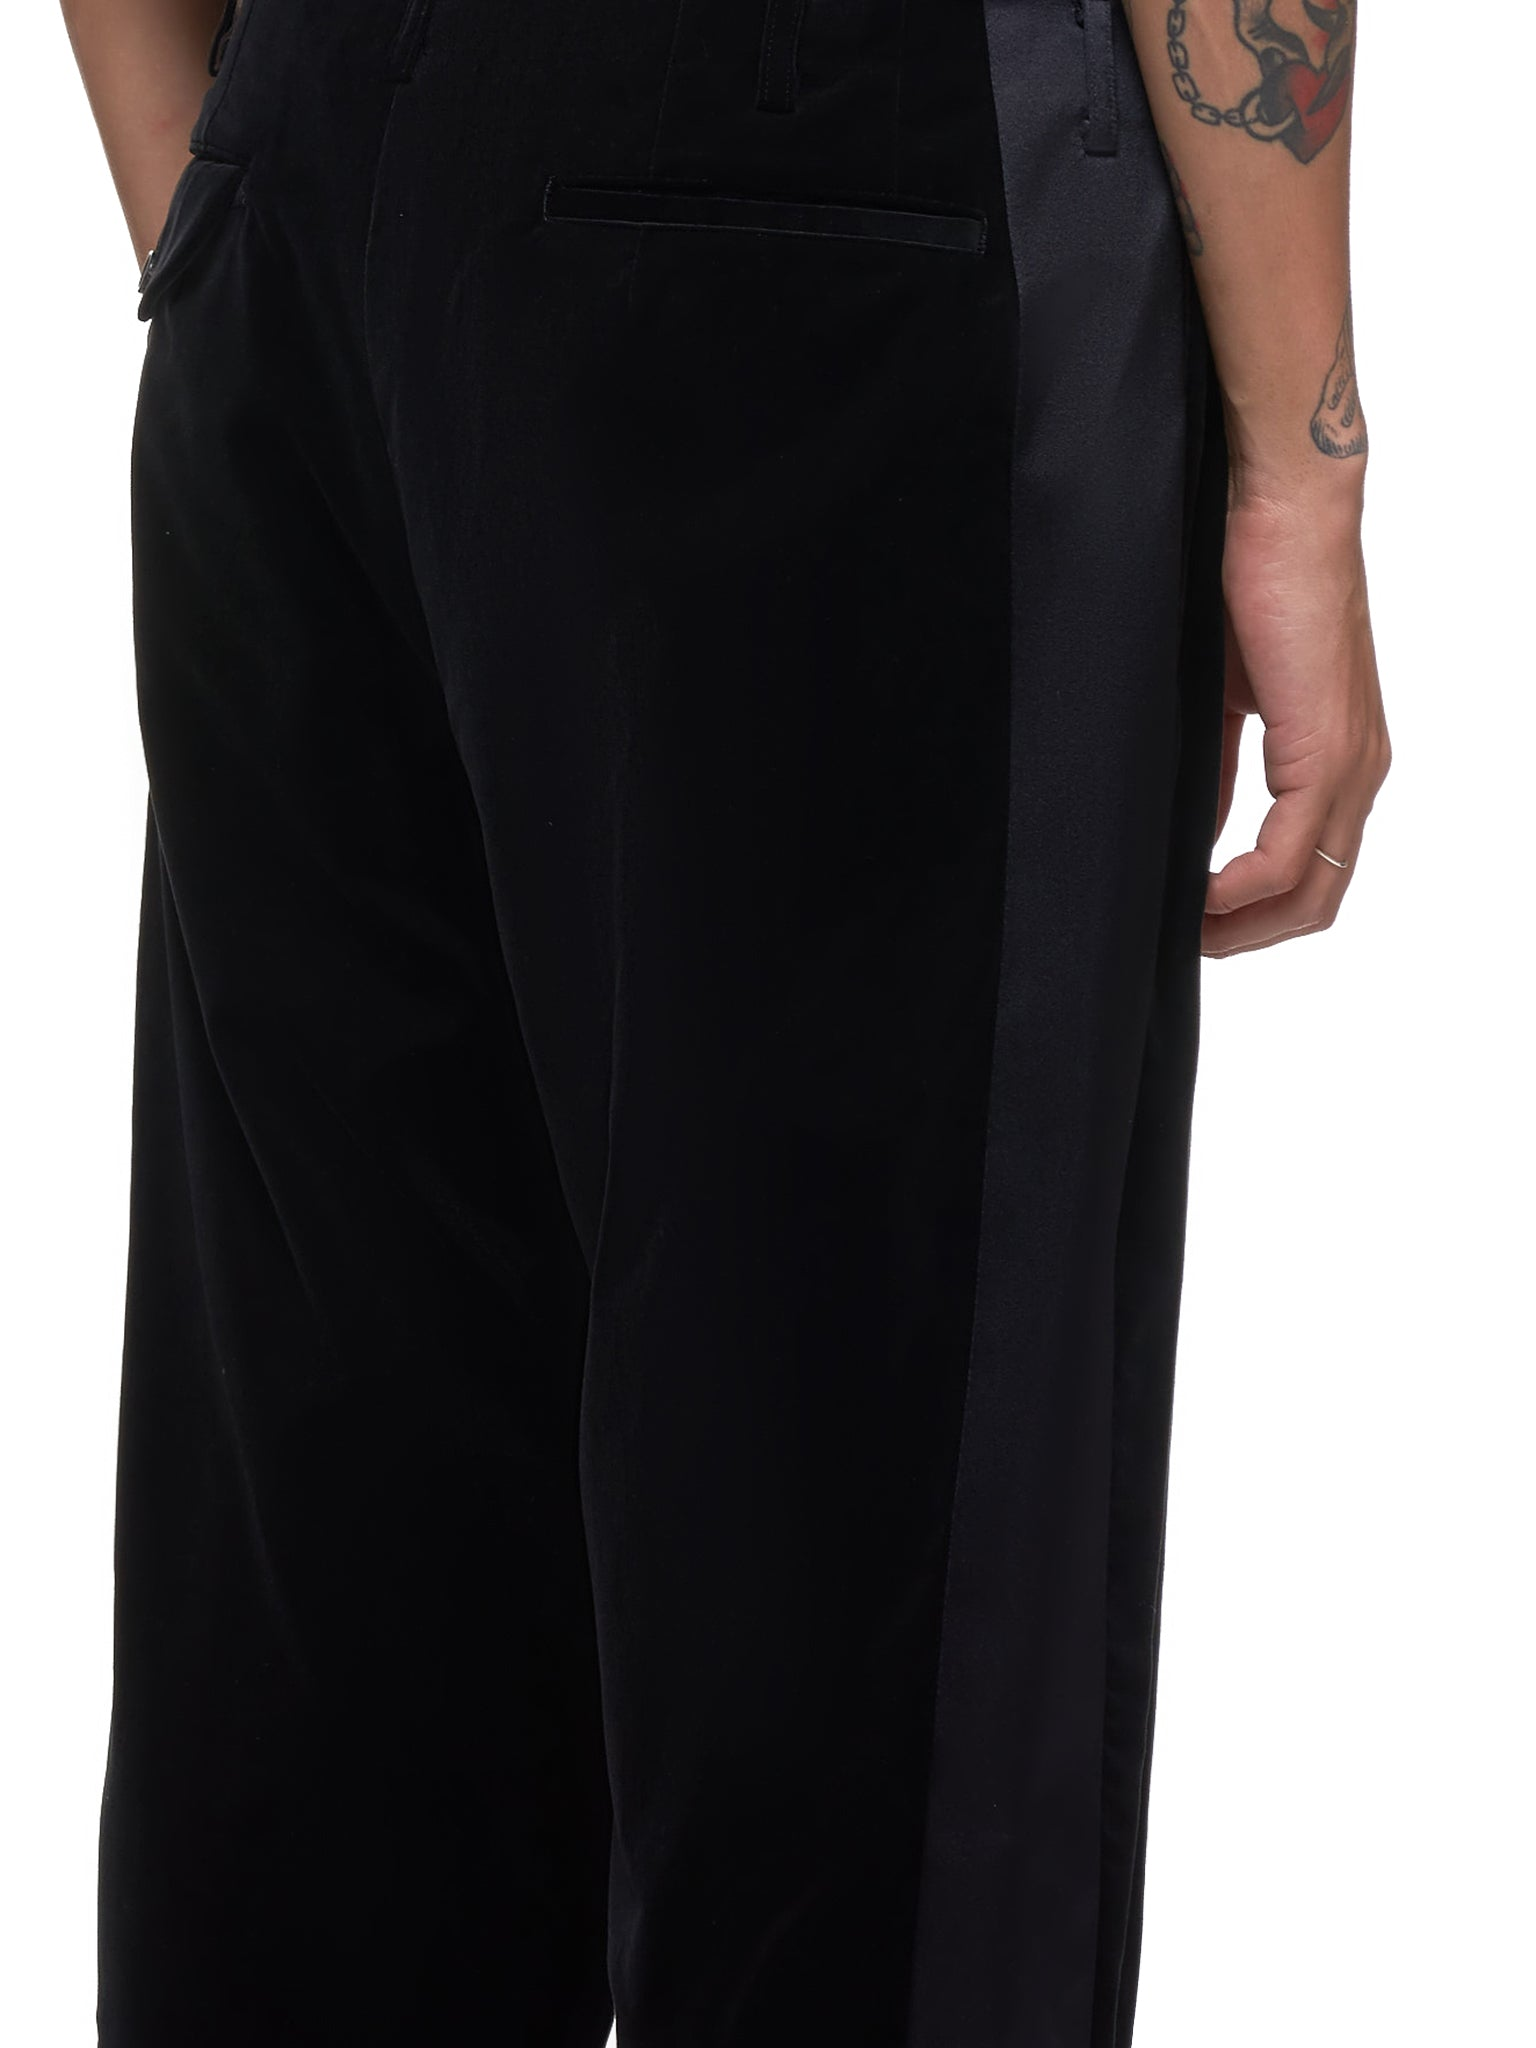 Cropped Trousers (PD-P009-051-BLACK)